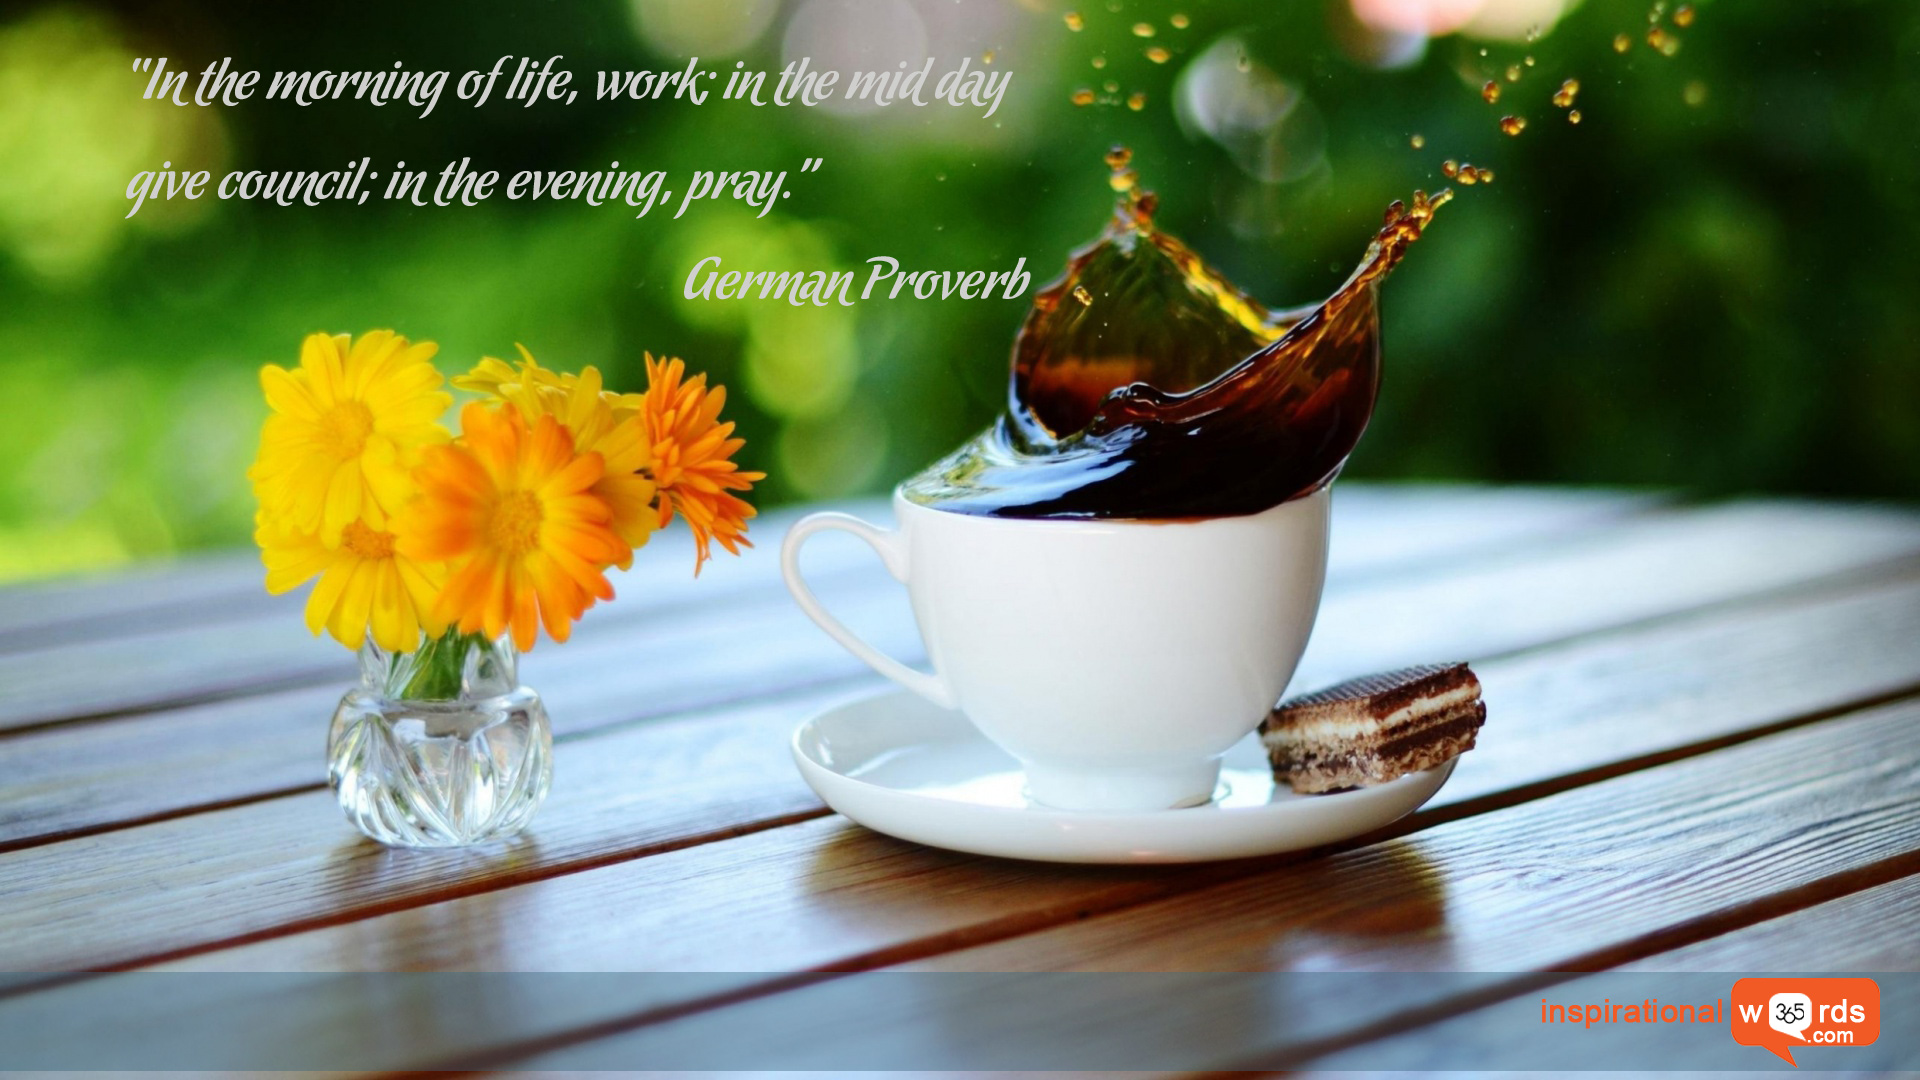 Inspirational Wallpaper Quote. German Proverb